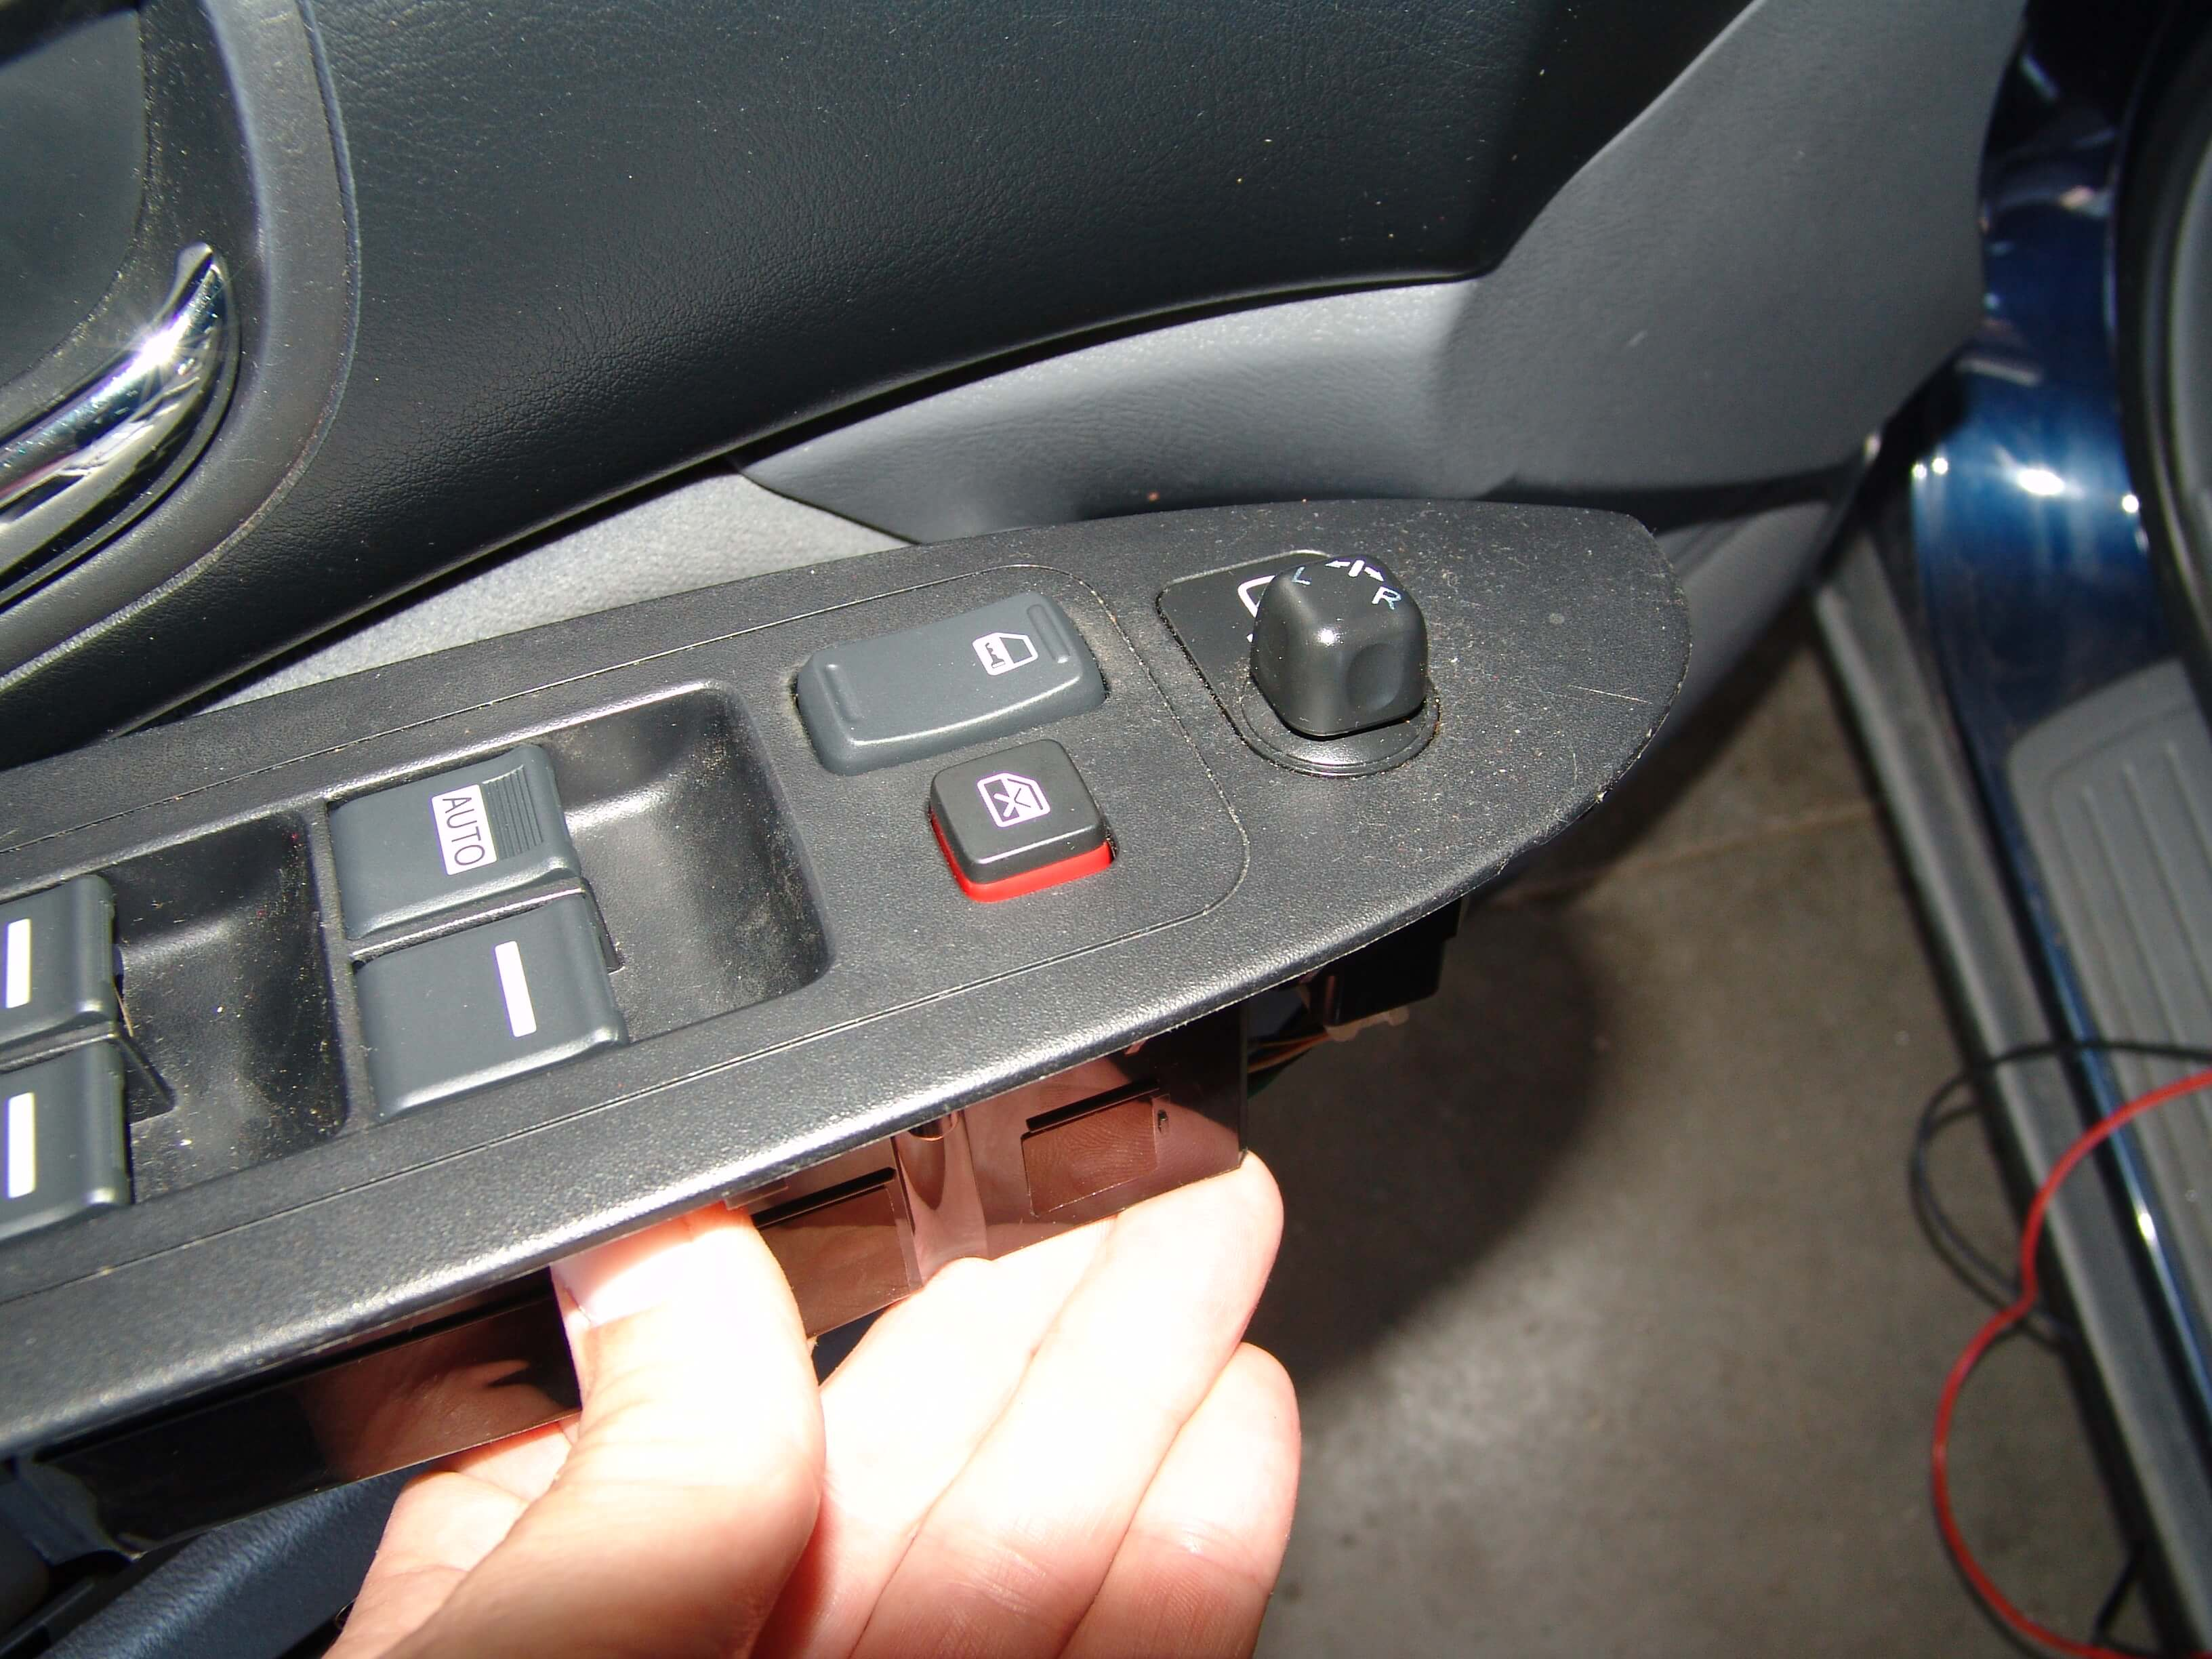 Sparkys Answers - 2006 Honda Accord, Passenger Power Windows Do Not Work